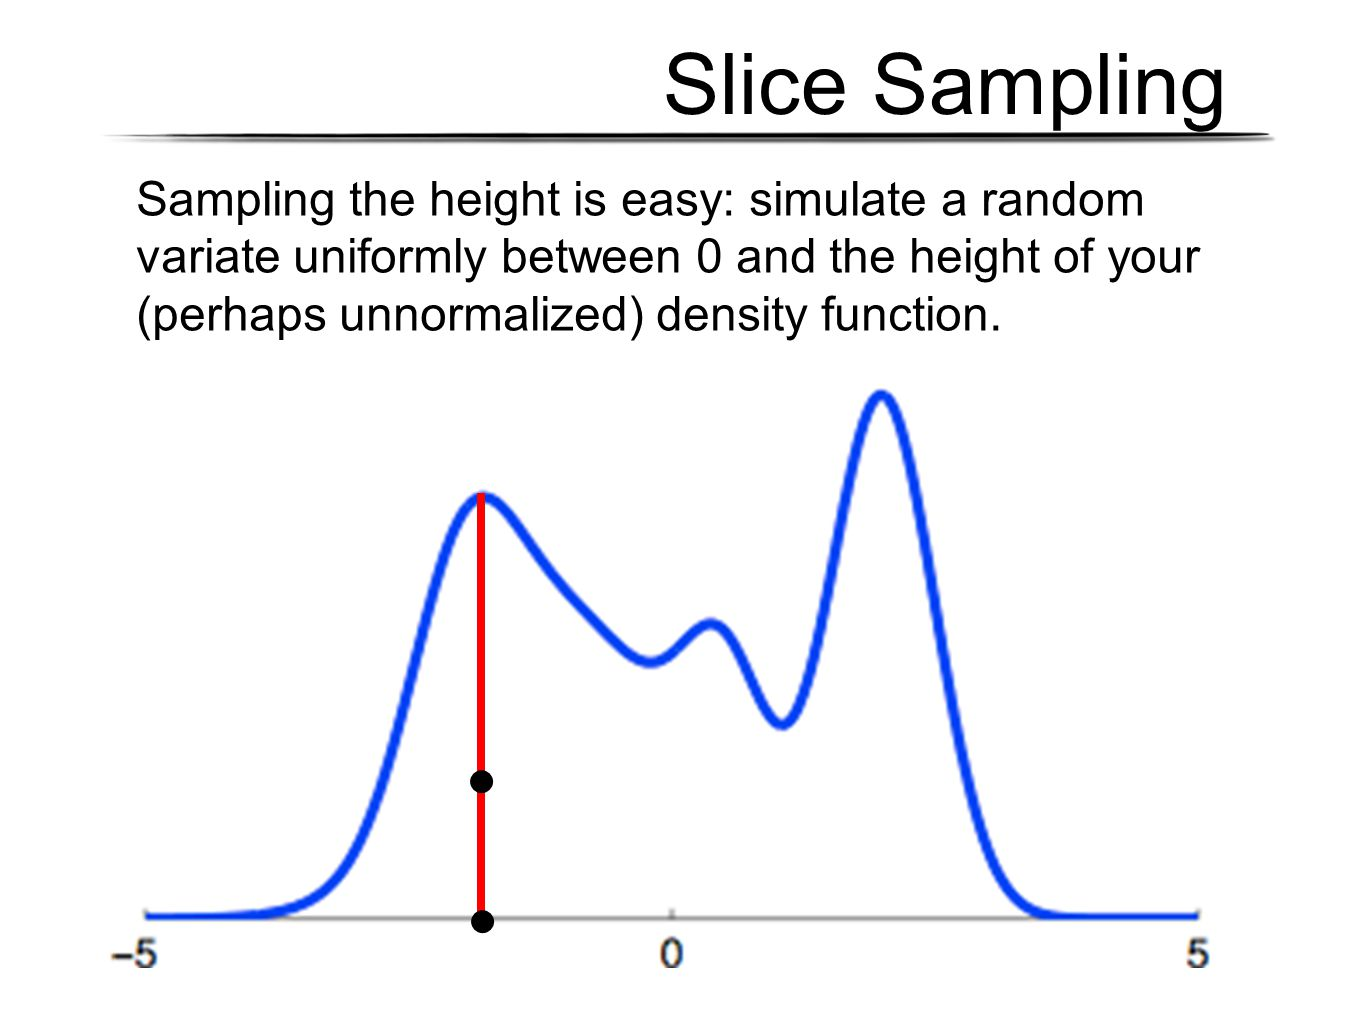 Slice Sampling Sampling the height is easy: simulate a random variate uniformly between 0 and the height of your (perhaps unnormalized) density function.